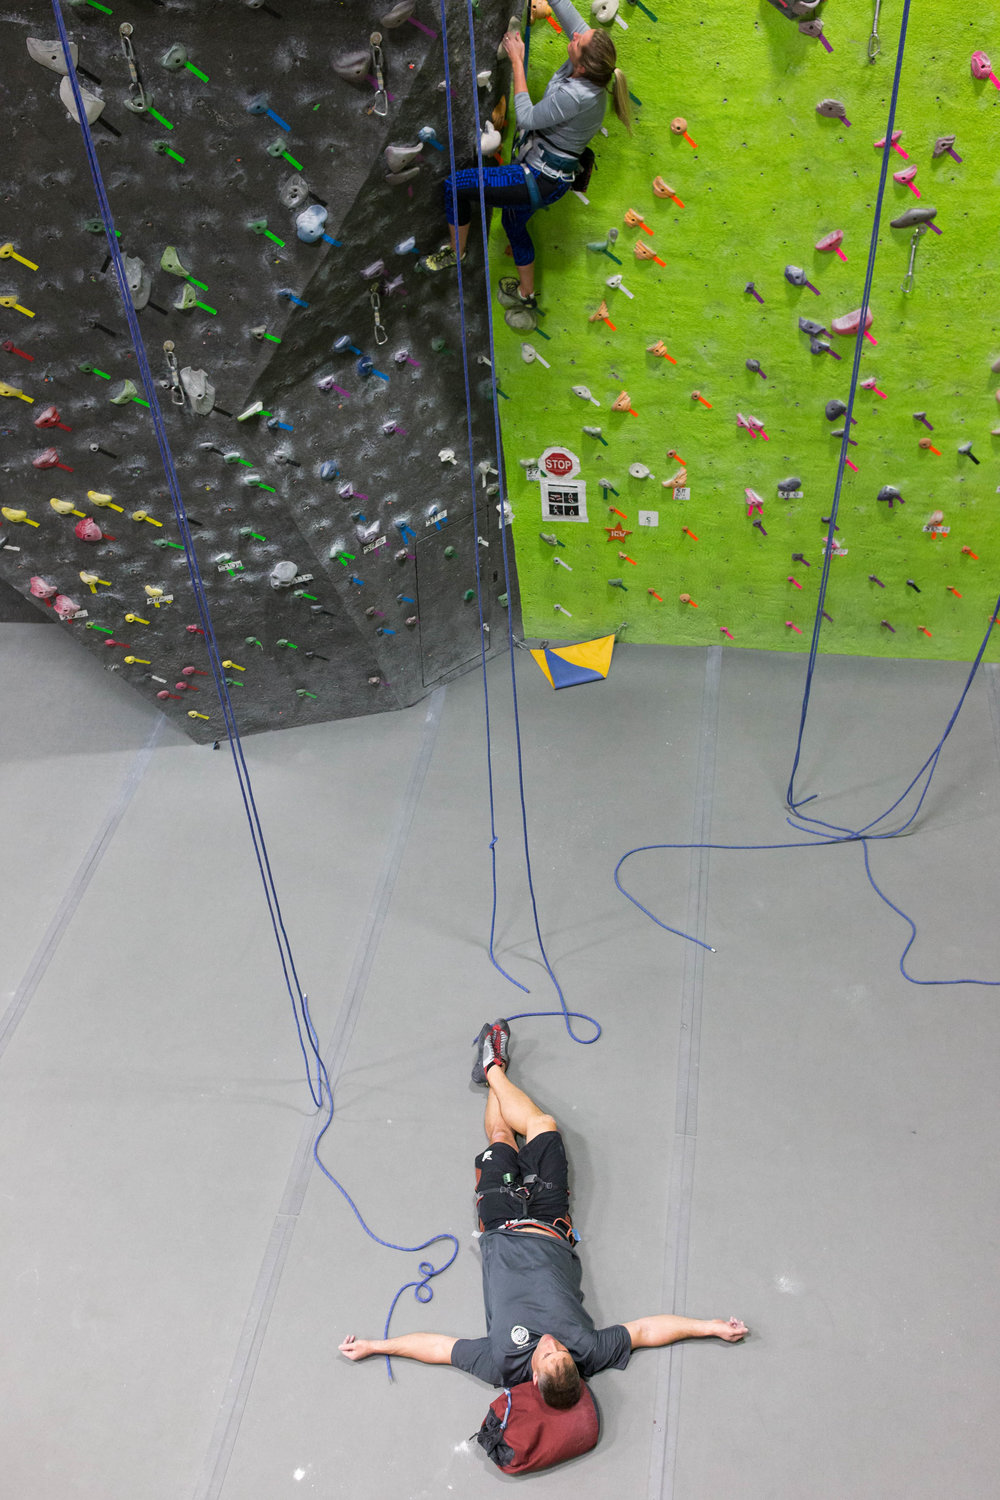 I'll often lie on my back on the cushioned floor mats and close my eyes to rest after a climb. Sometimes I'll fall asleep for a little while there. I come to this gym religiously every Monday and Wednesday evening, serving as a way to get me out of the house and out of my shell.